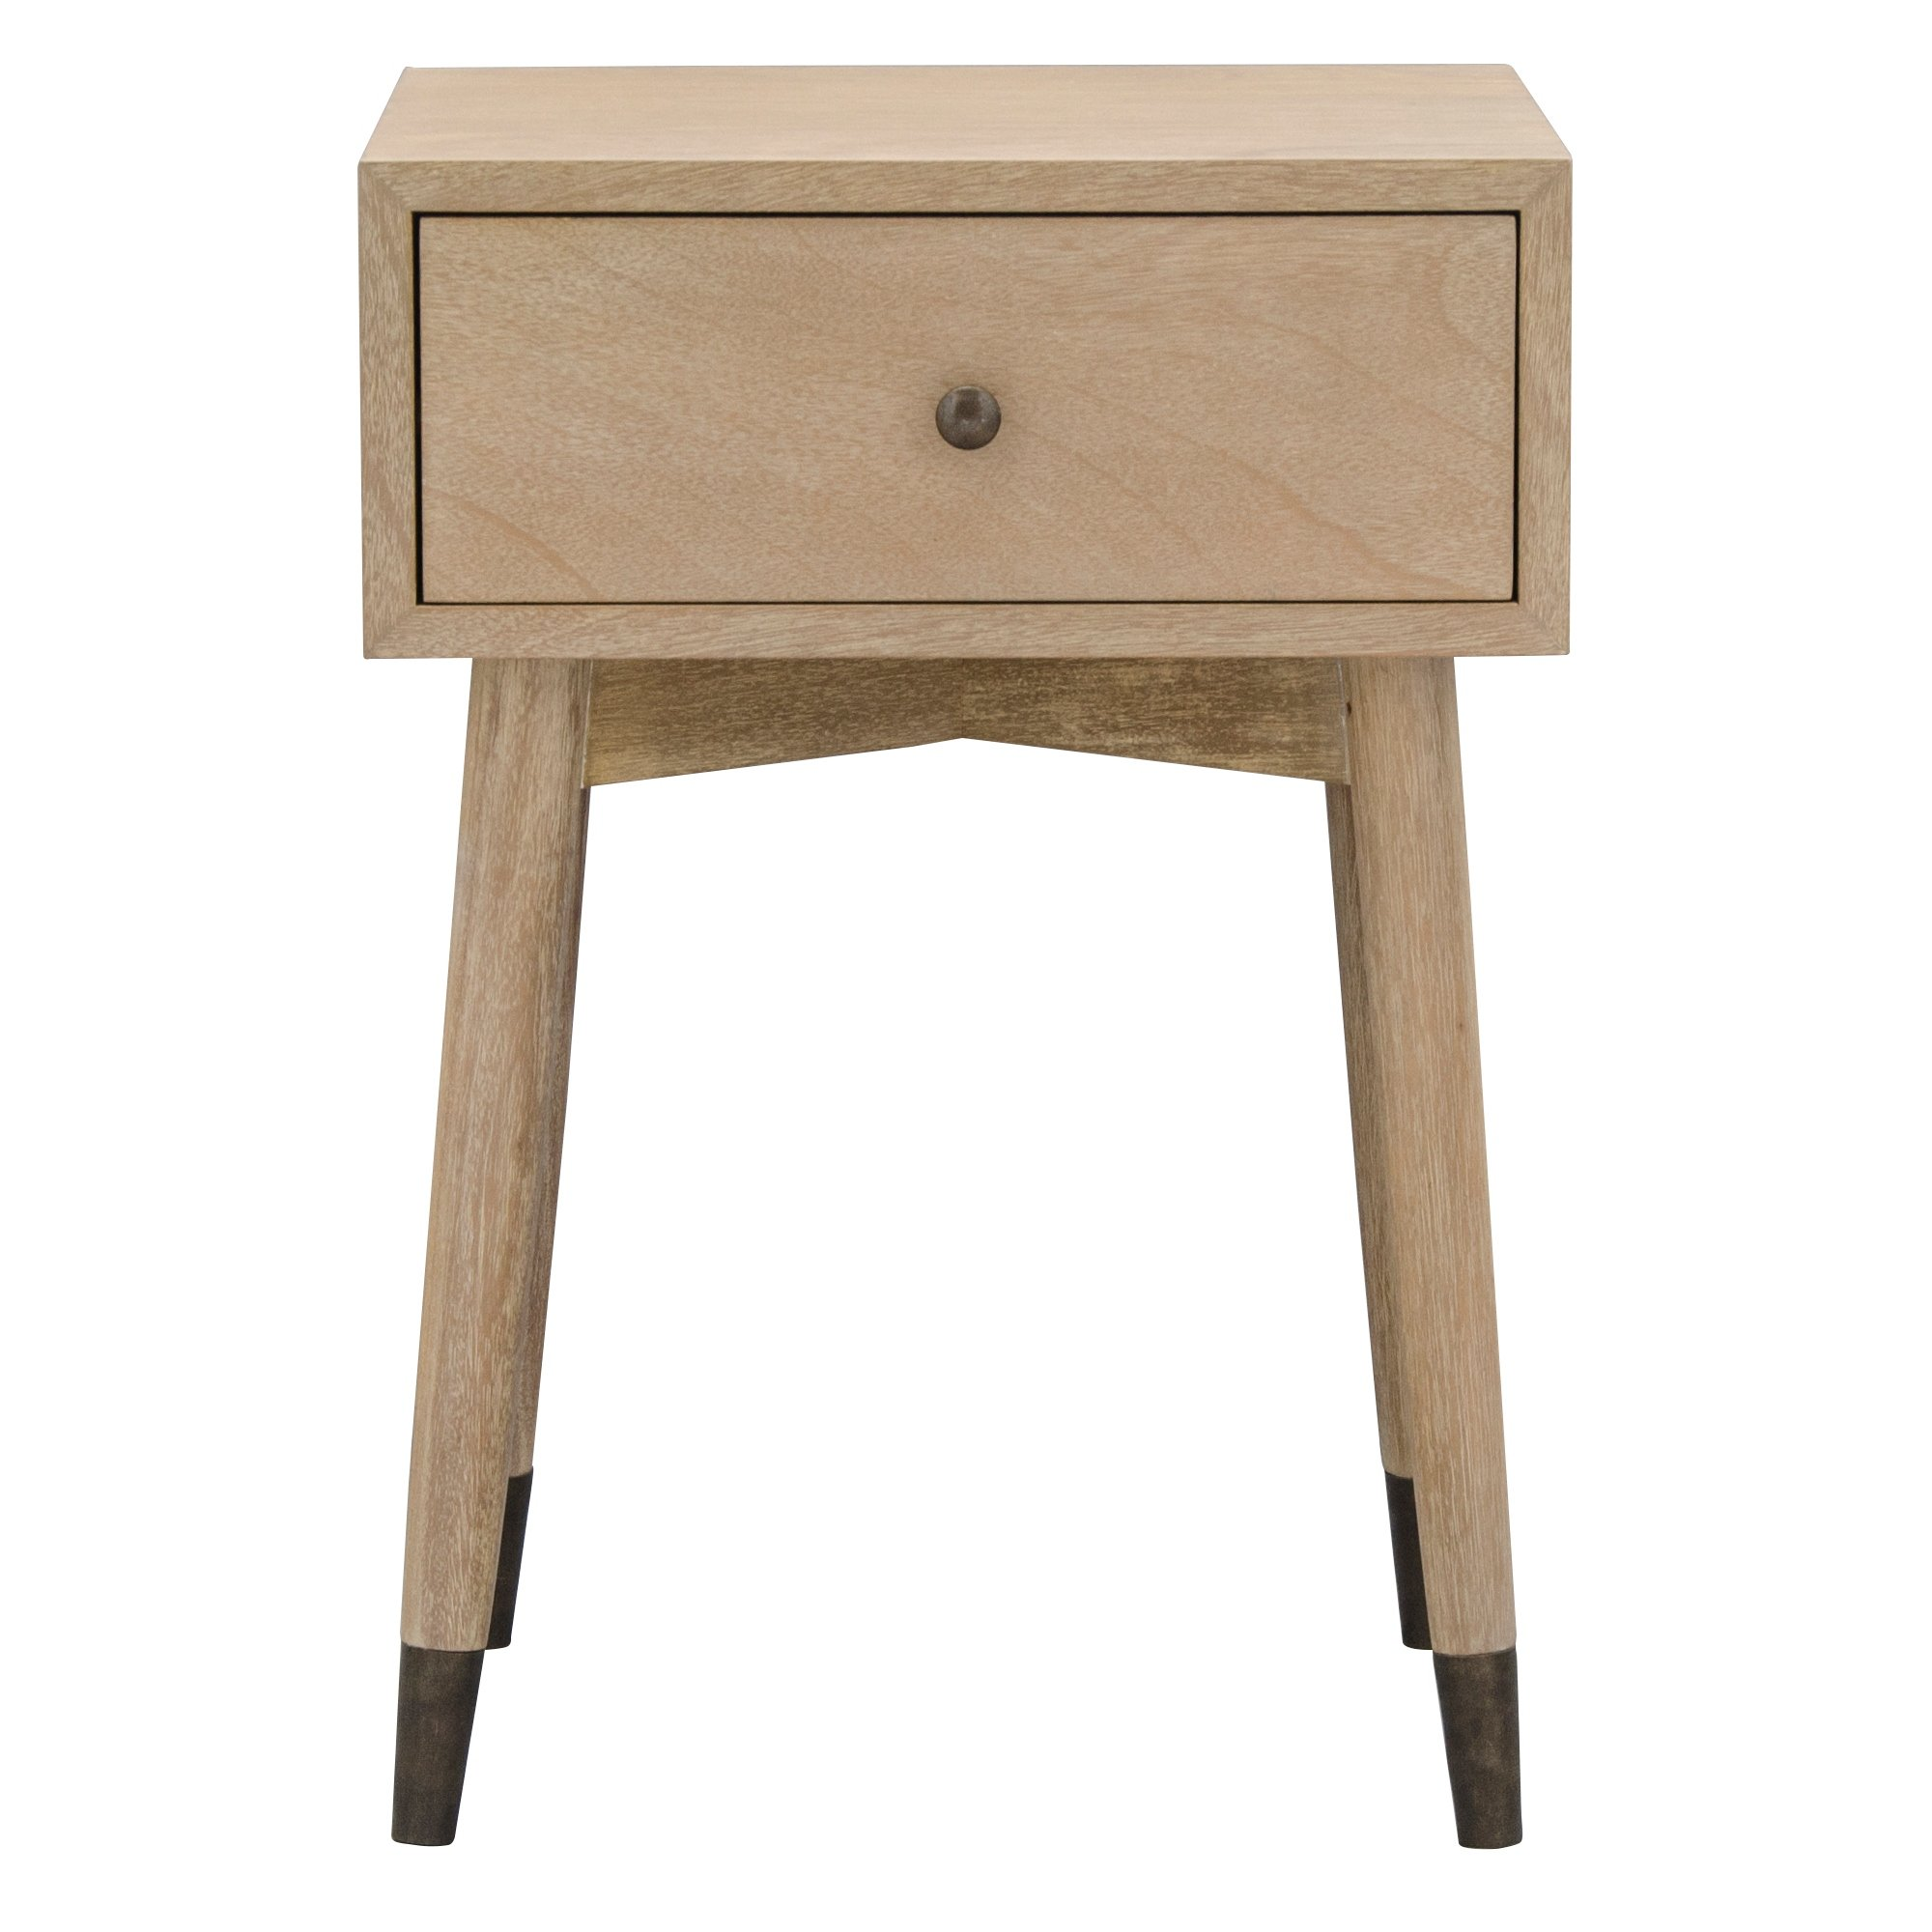 Furnilac Mid Century Accent Table With Drawer